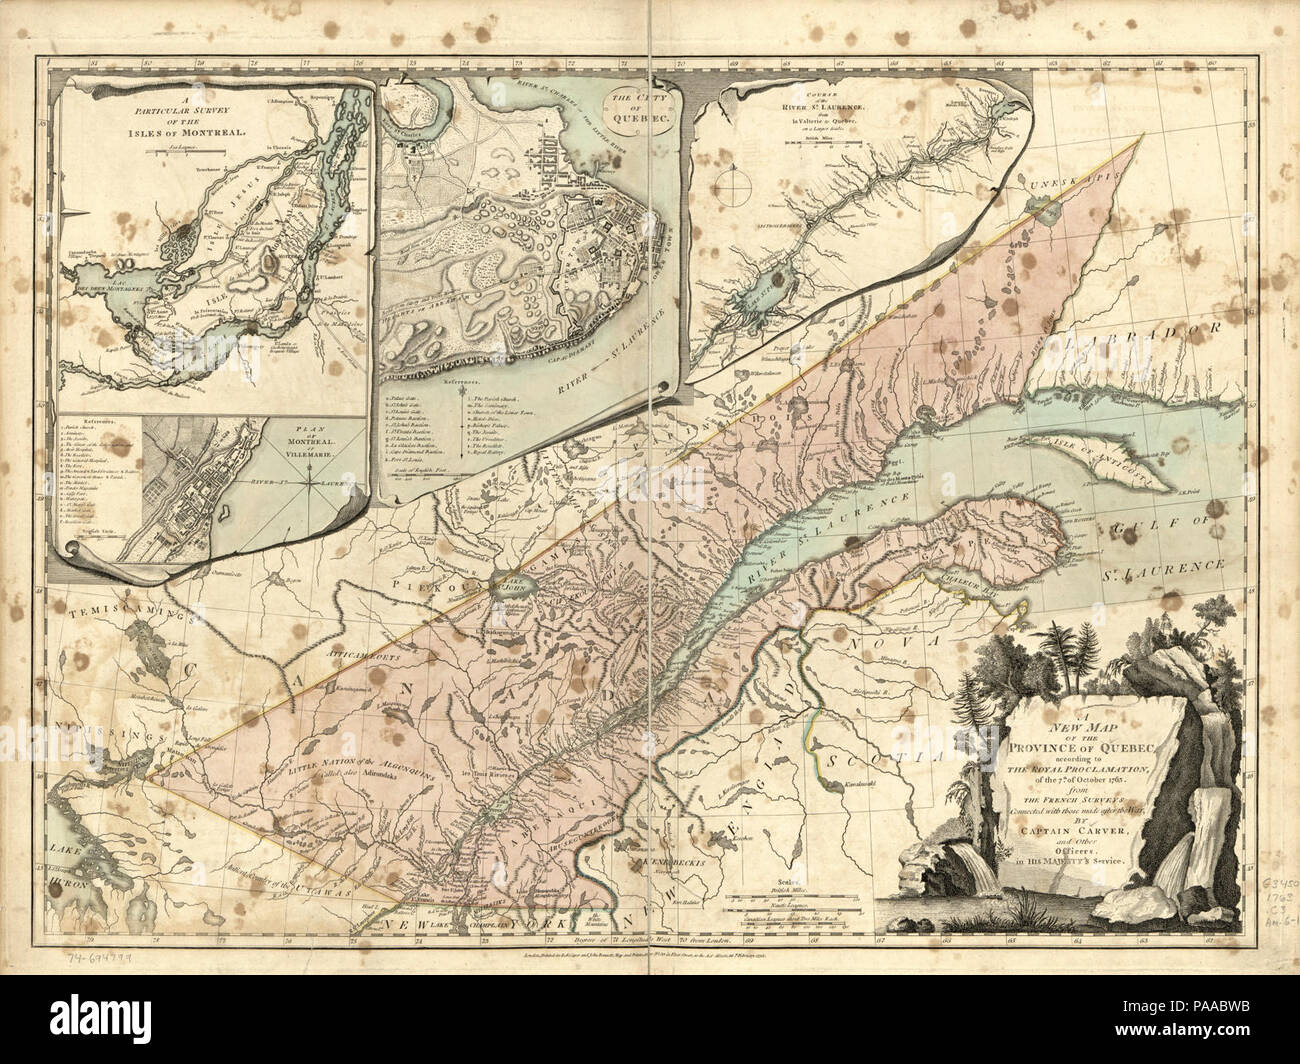 A new map of the Province of Quebec, according to the Royal Proclamation, of the 7th of October 1763. - Stock Image